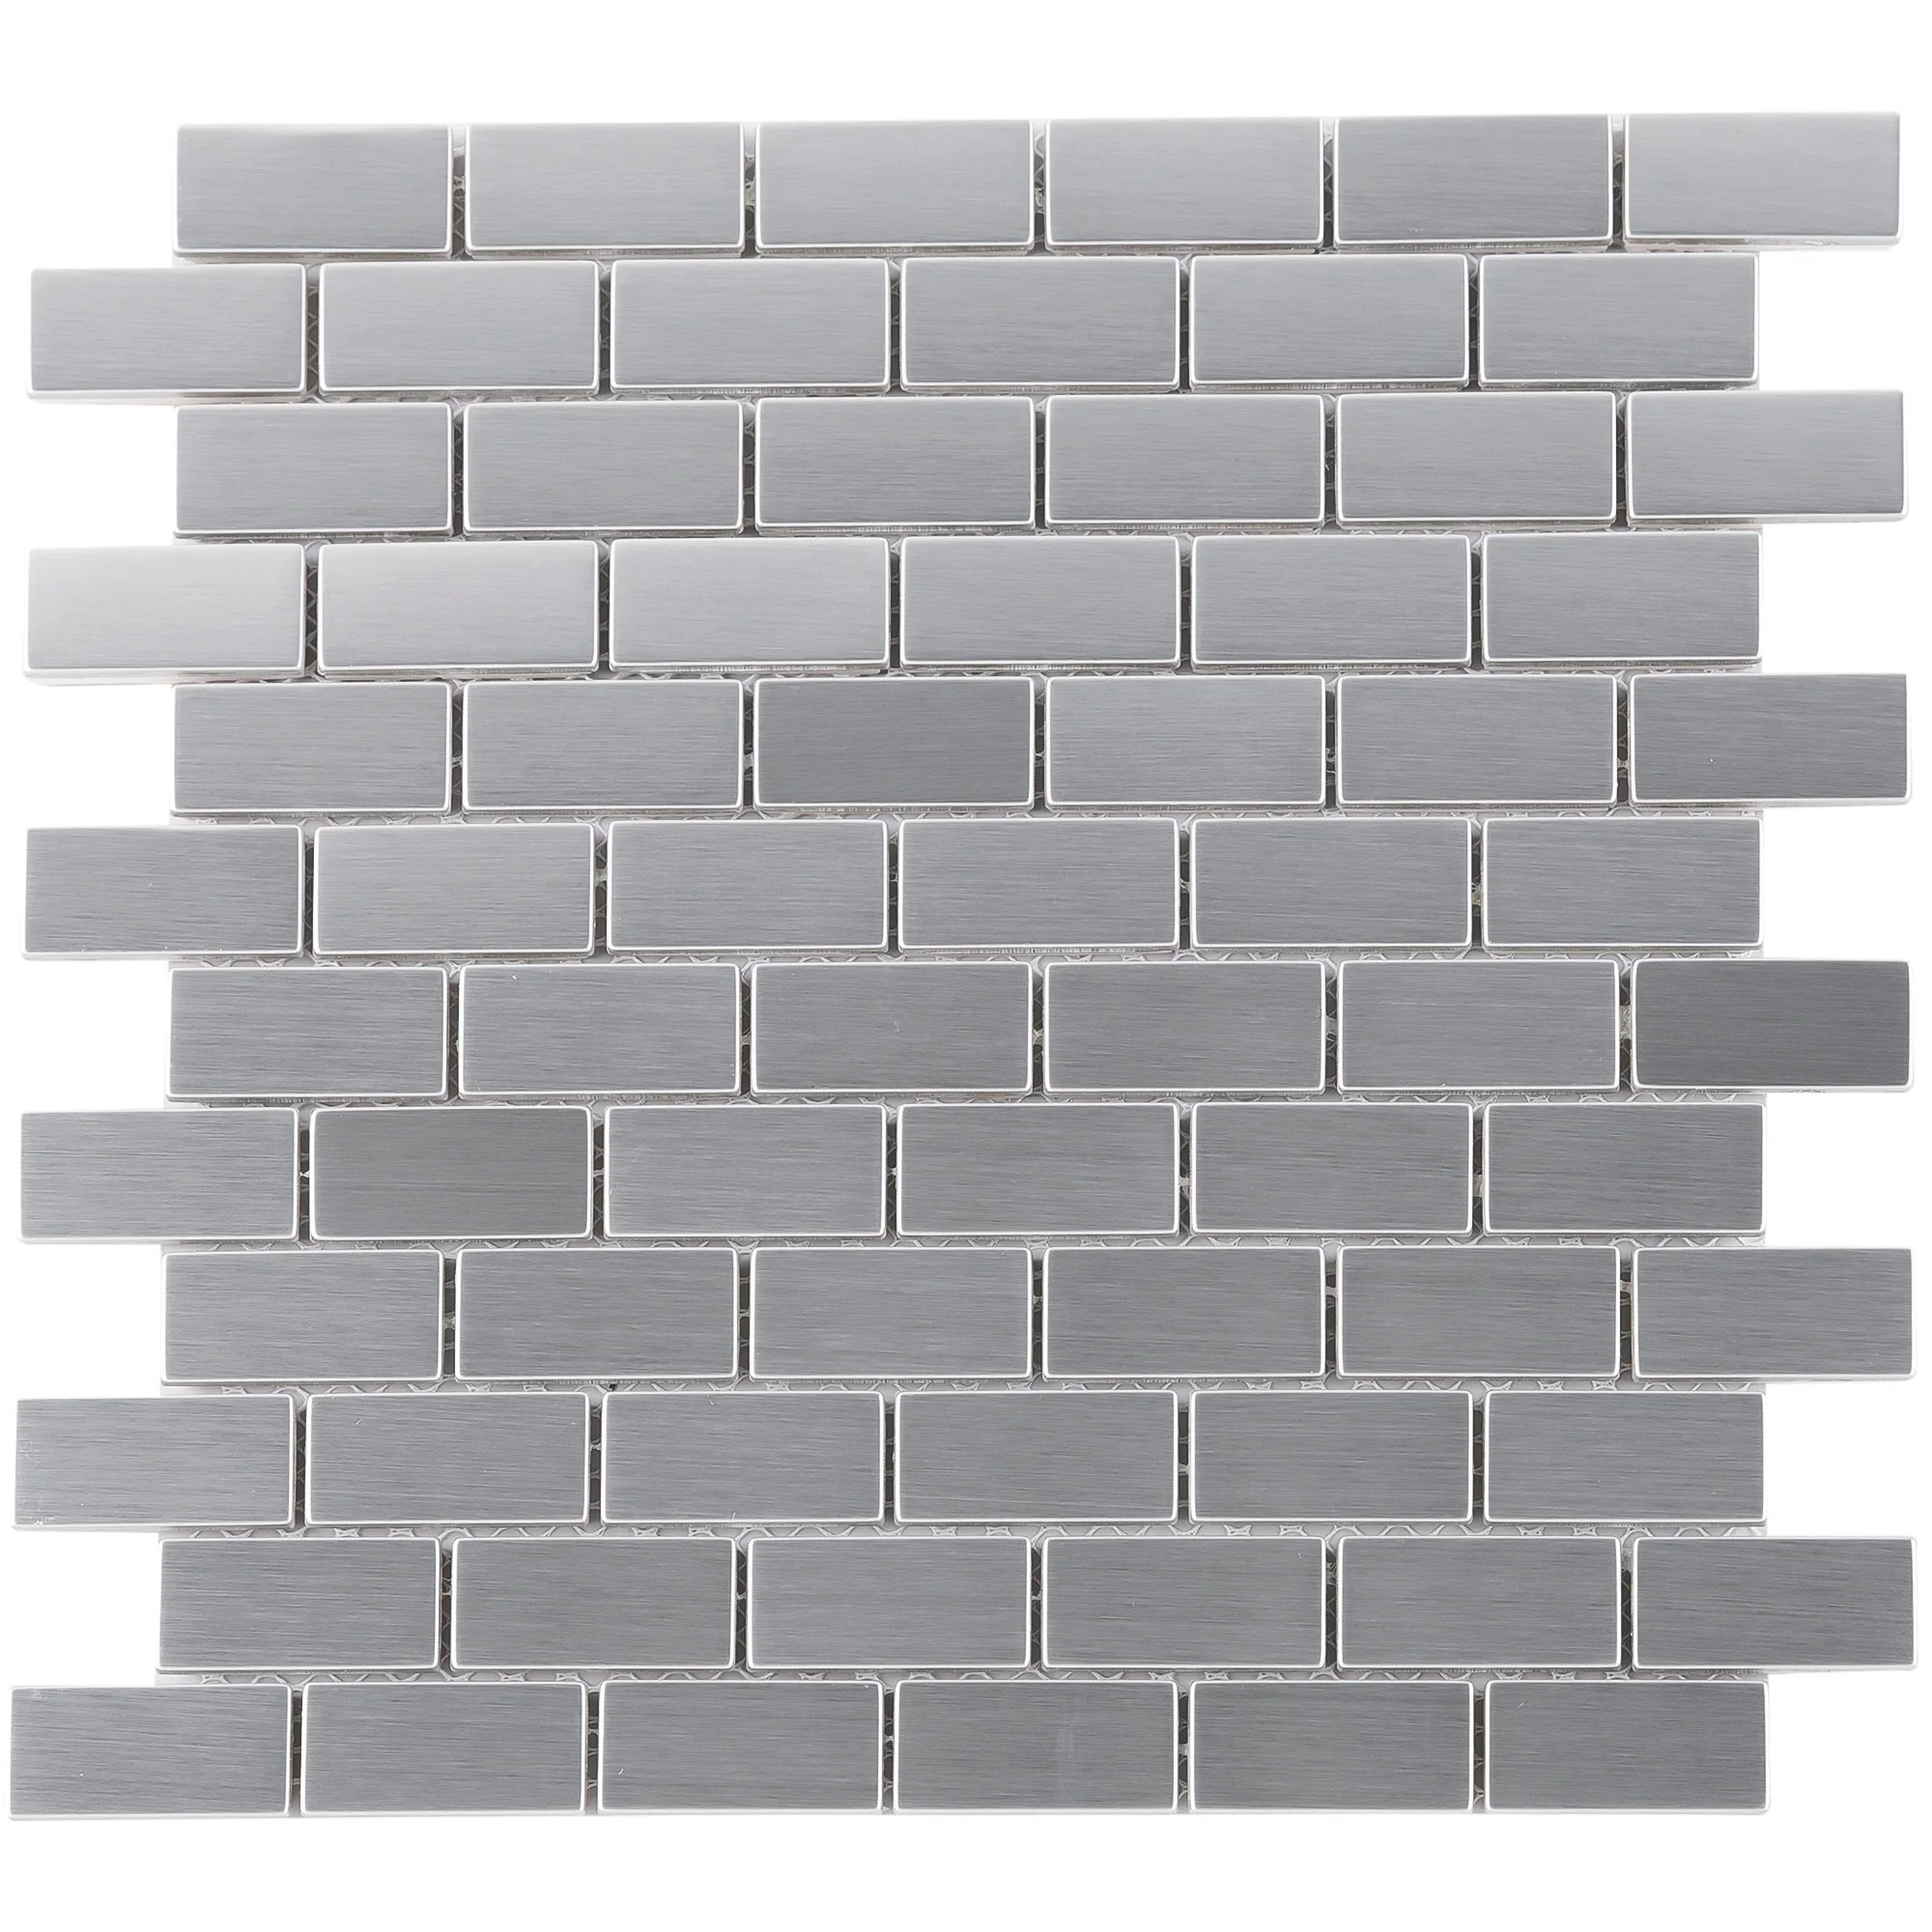 tilegen brushed stainless steel brick 1 x2 metal mosaic tile in silver gray wall tile 10 sheets 9 6sqft